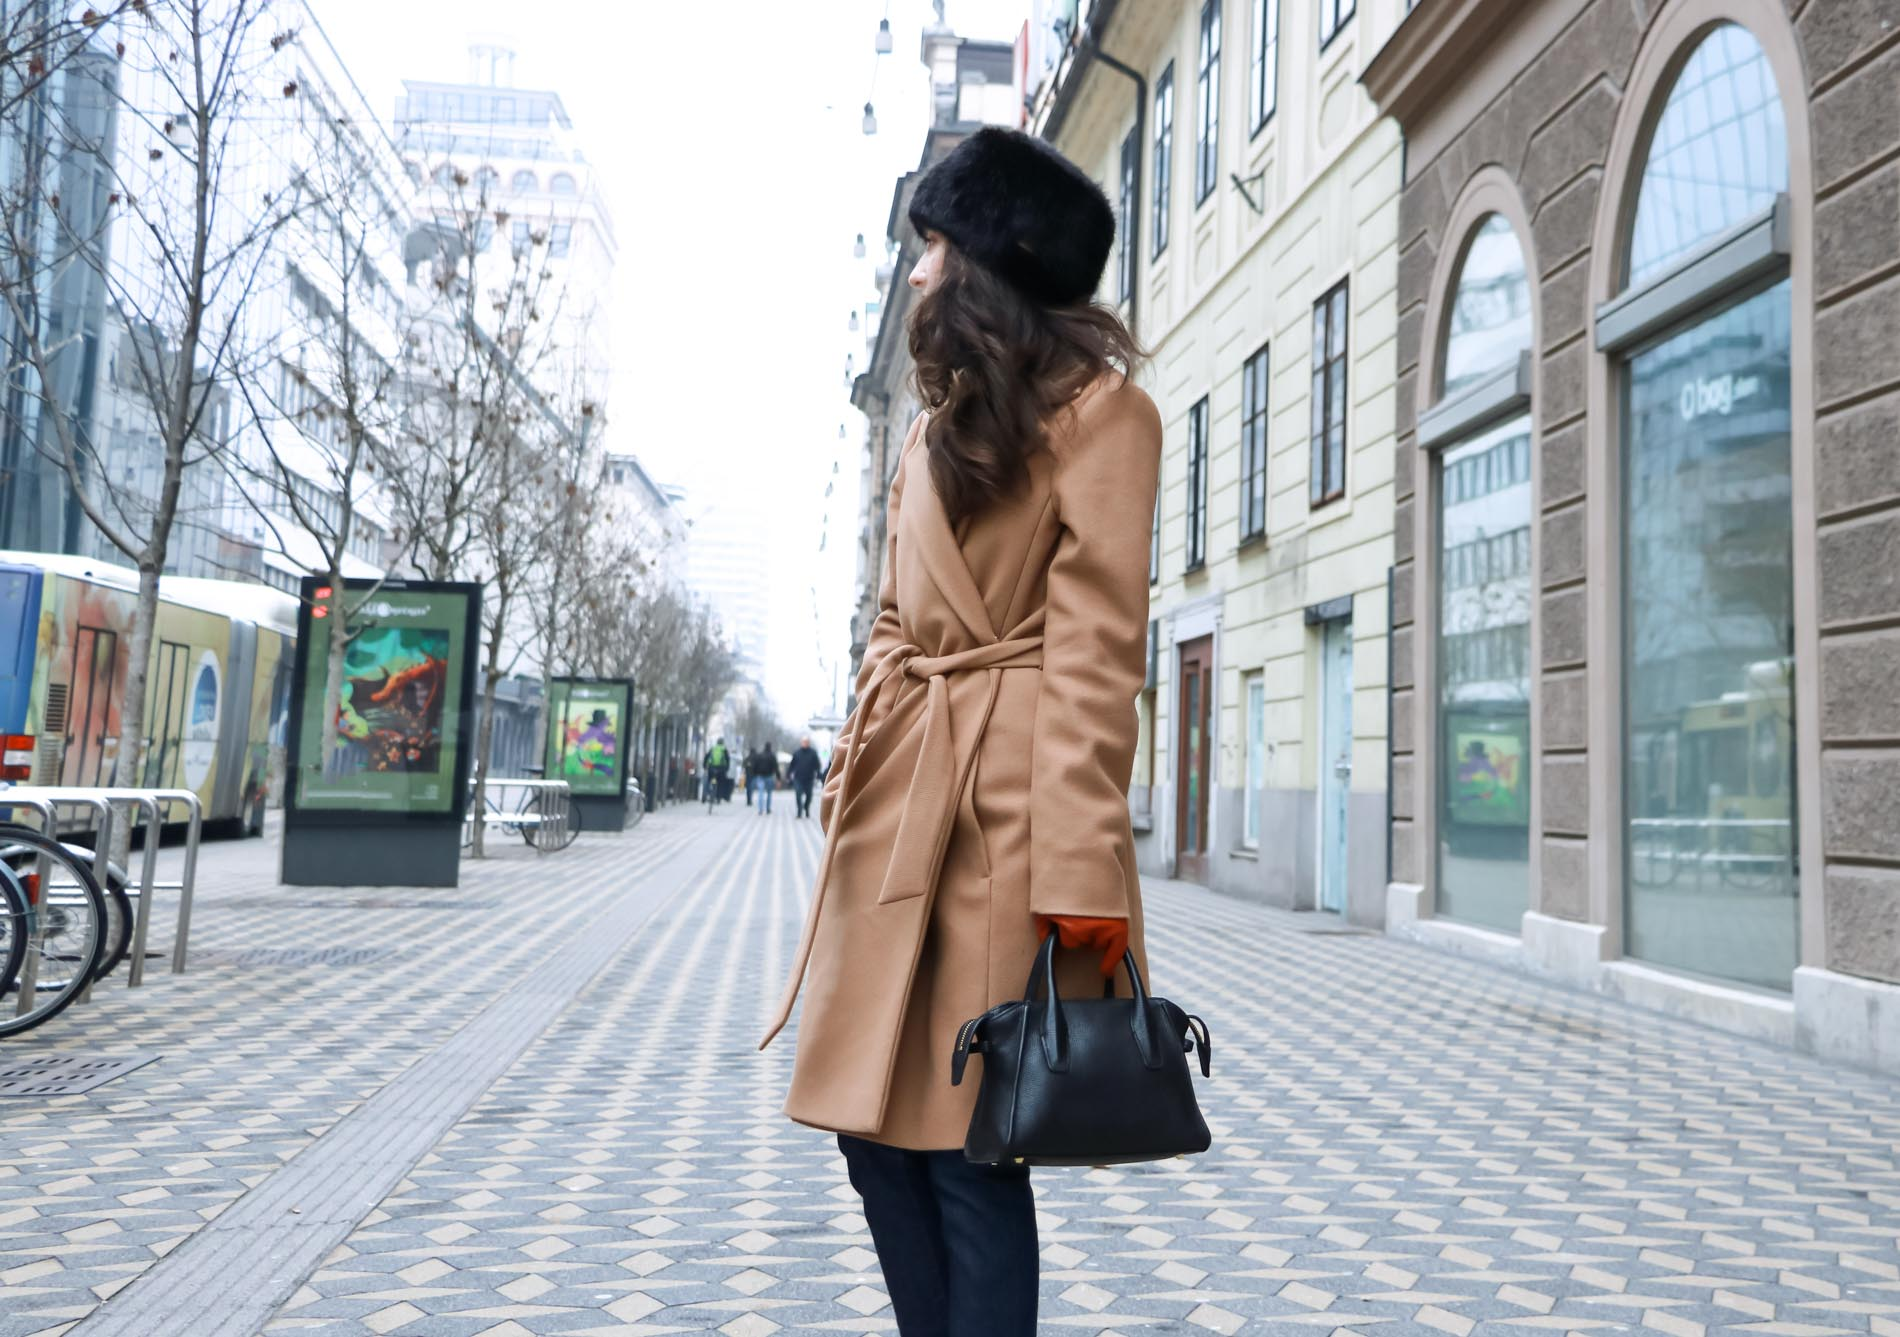 Fashion Blogger Veronika Lipar of Brunette from Wall Street wearing casual winter outfit you can put on in 5 minutes